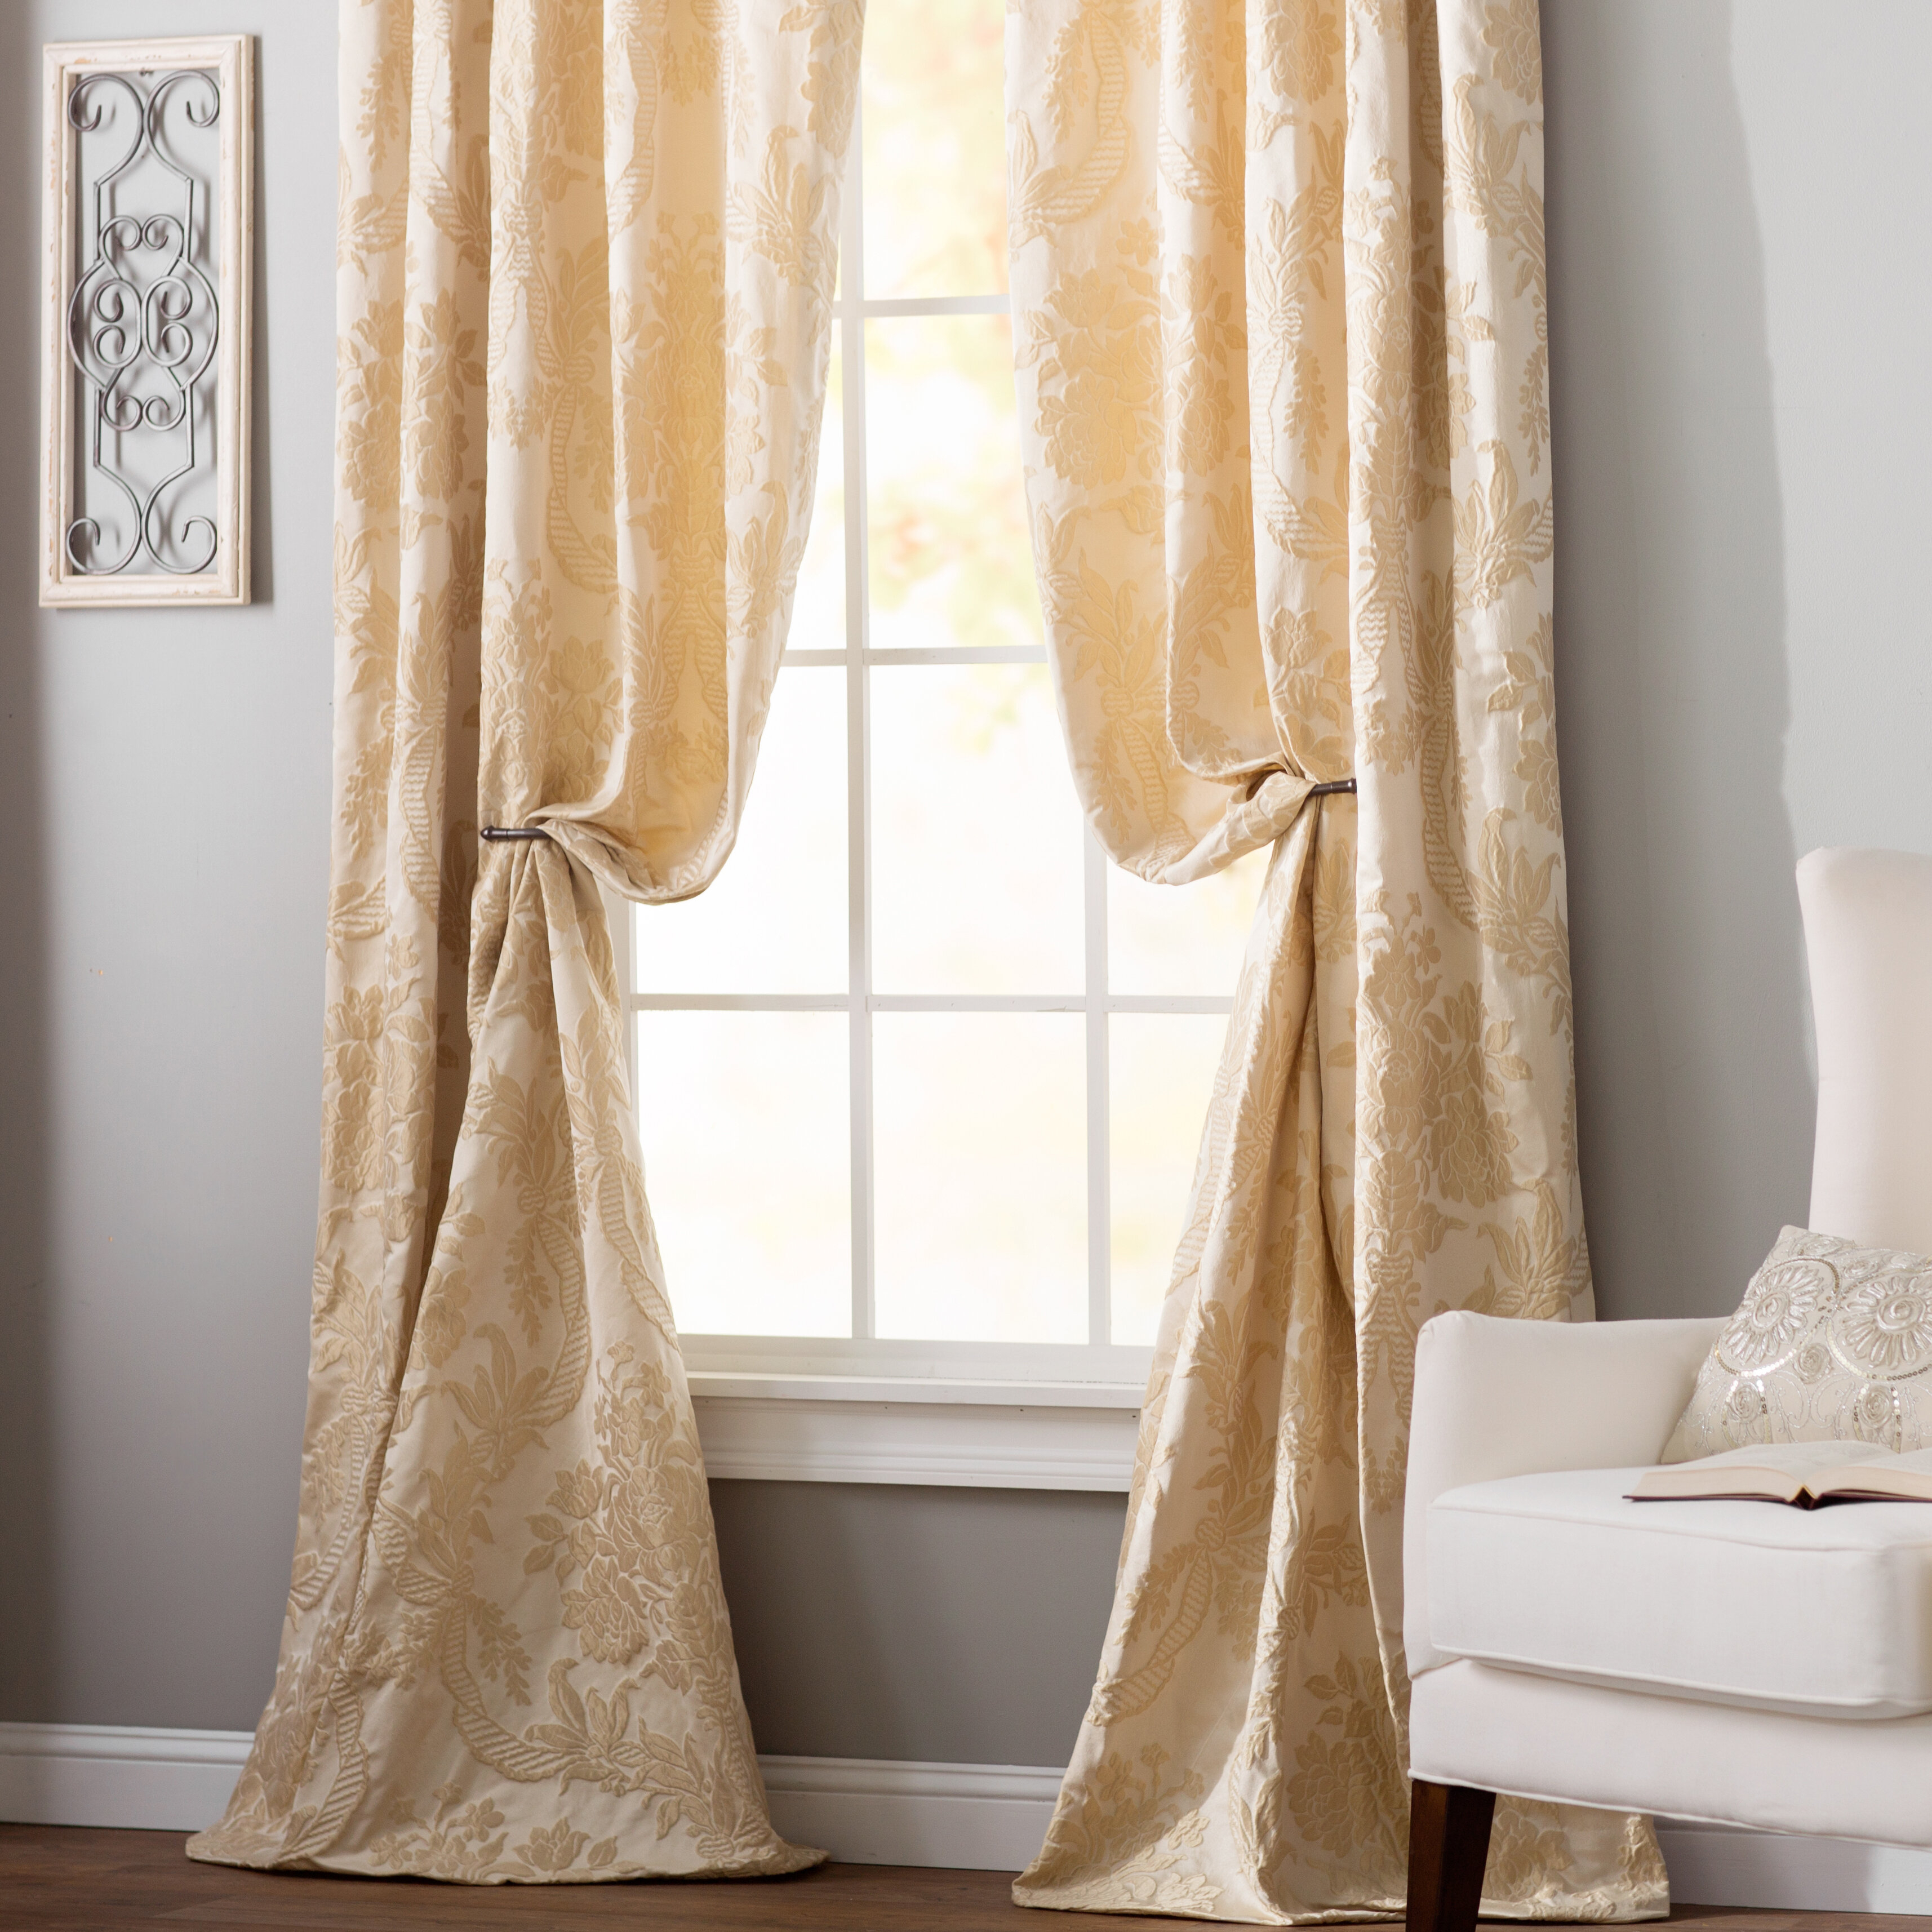 Wayfair – Online Home Store For Furniture, Decor Pertaining To Luxury Collection Faux Leather Blackout Single Curtain Panels (View 6 of 20)